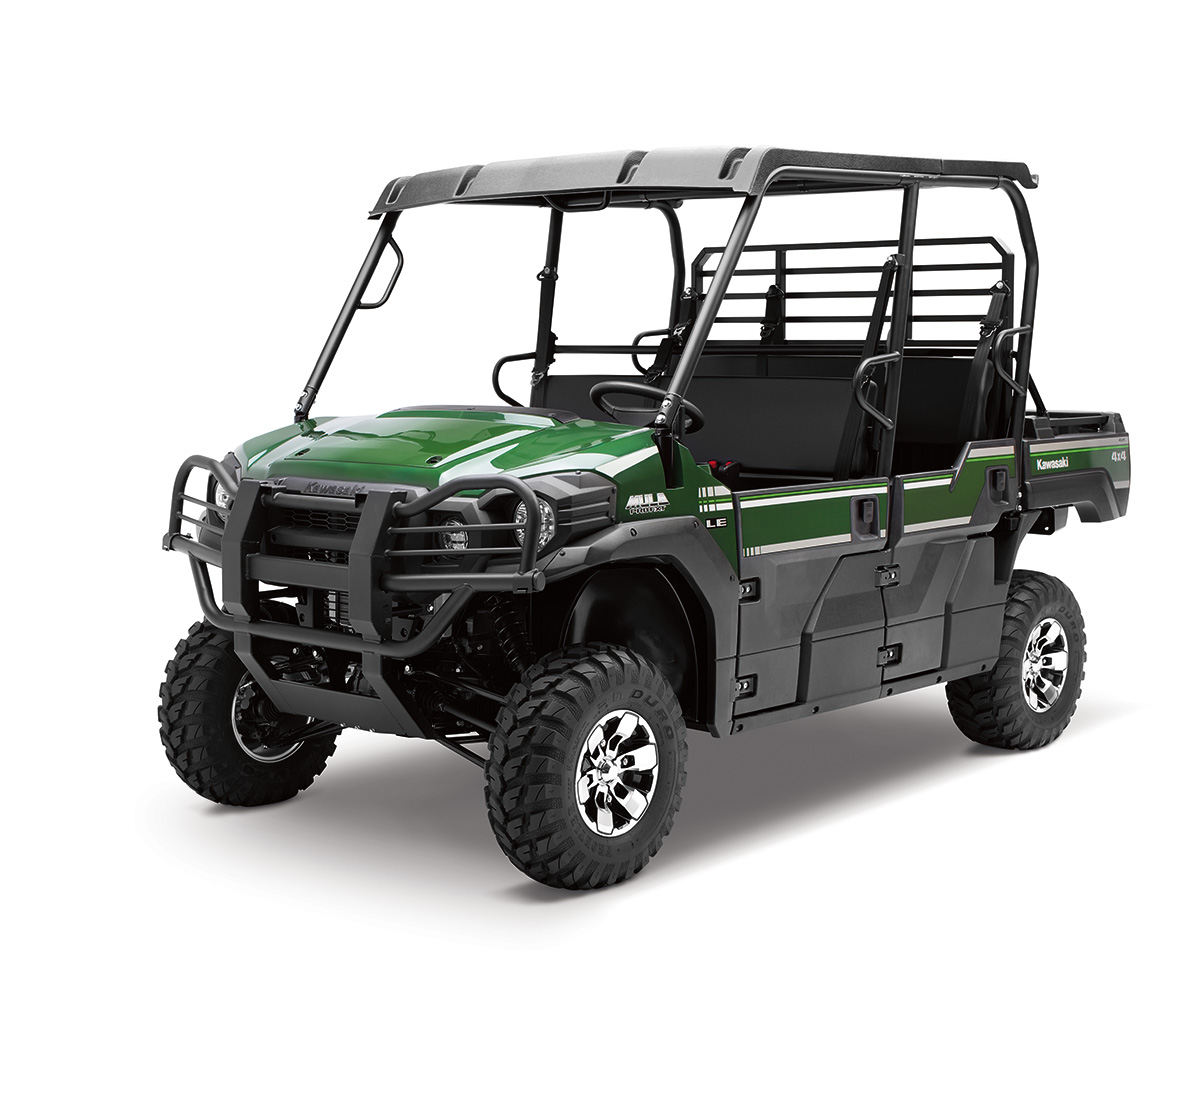 Kawasaki Mule Brush Guard